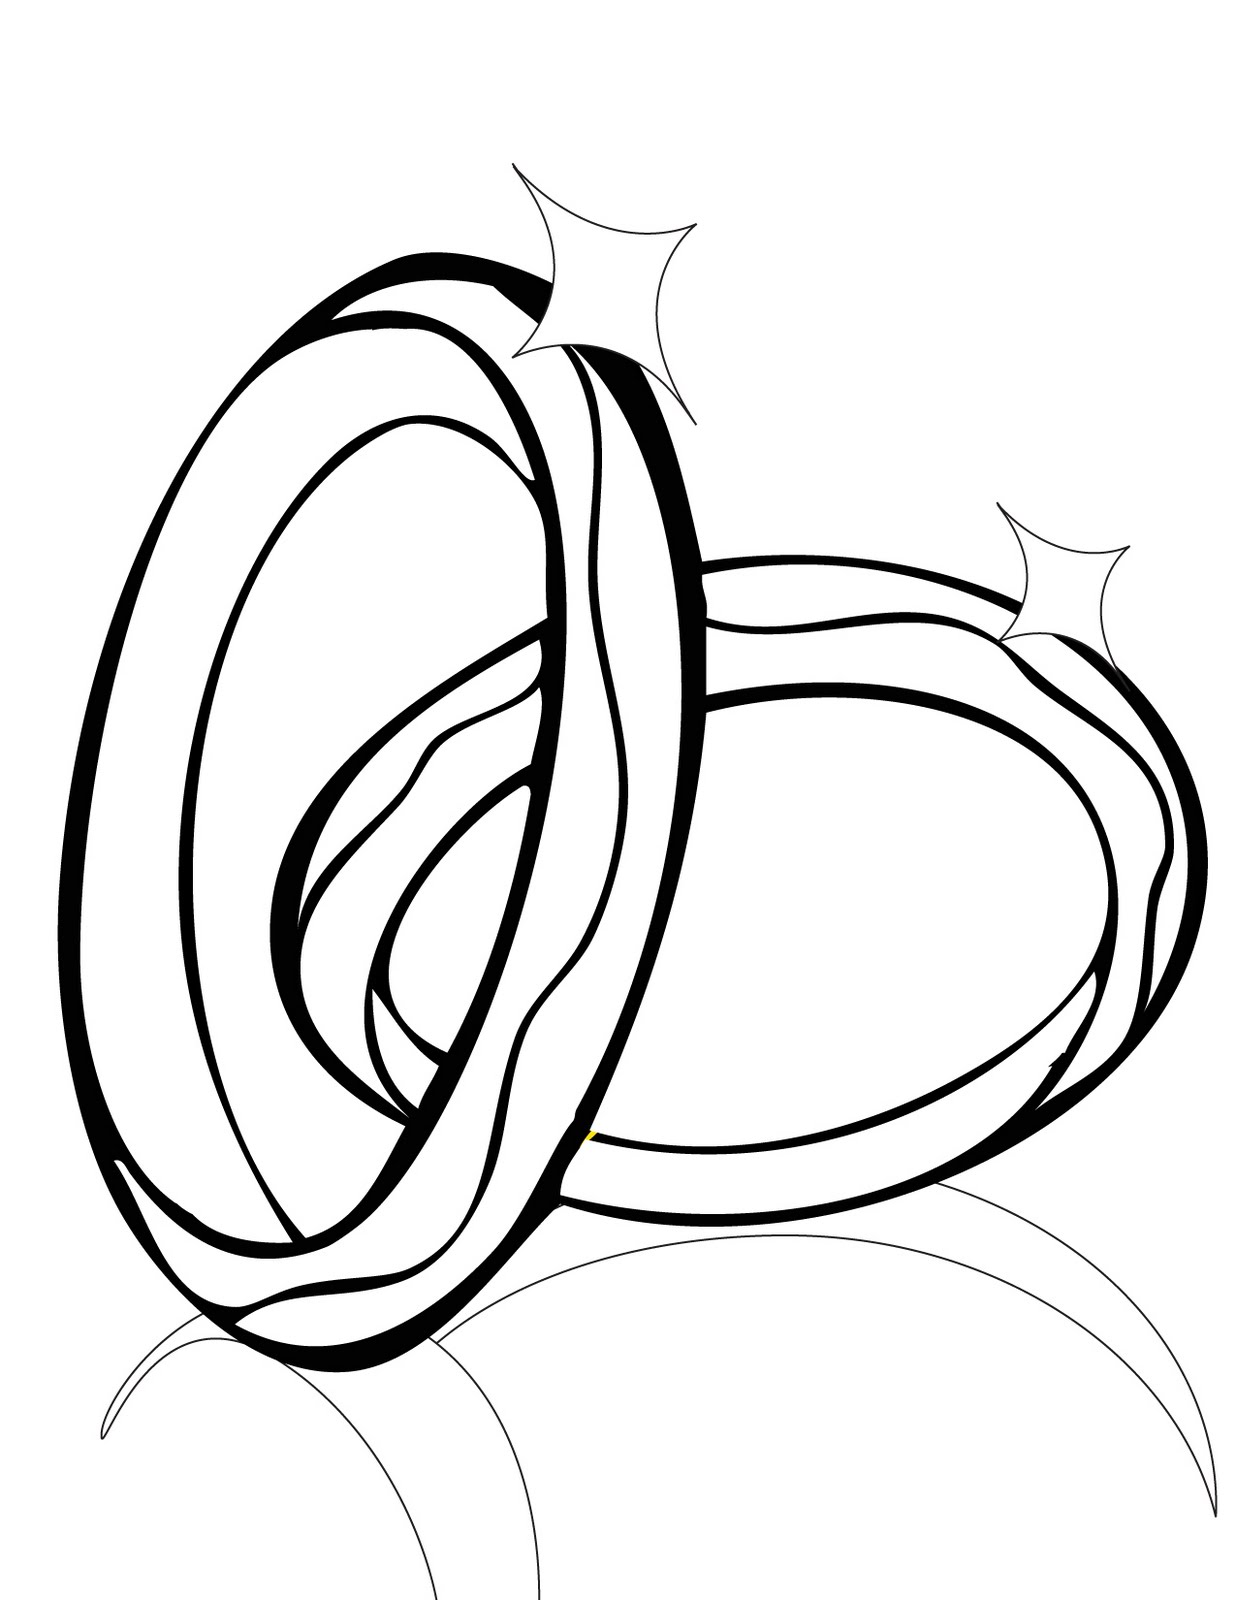 coloring pages of rings - photo#16